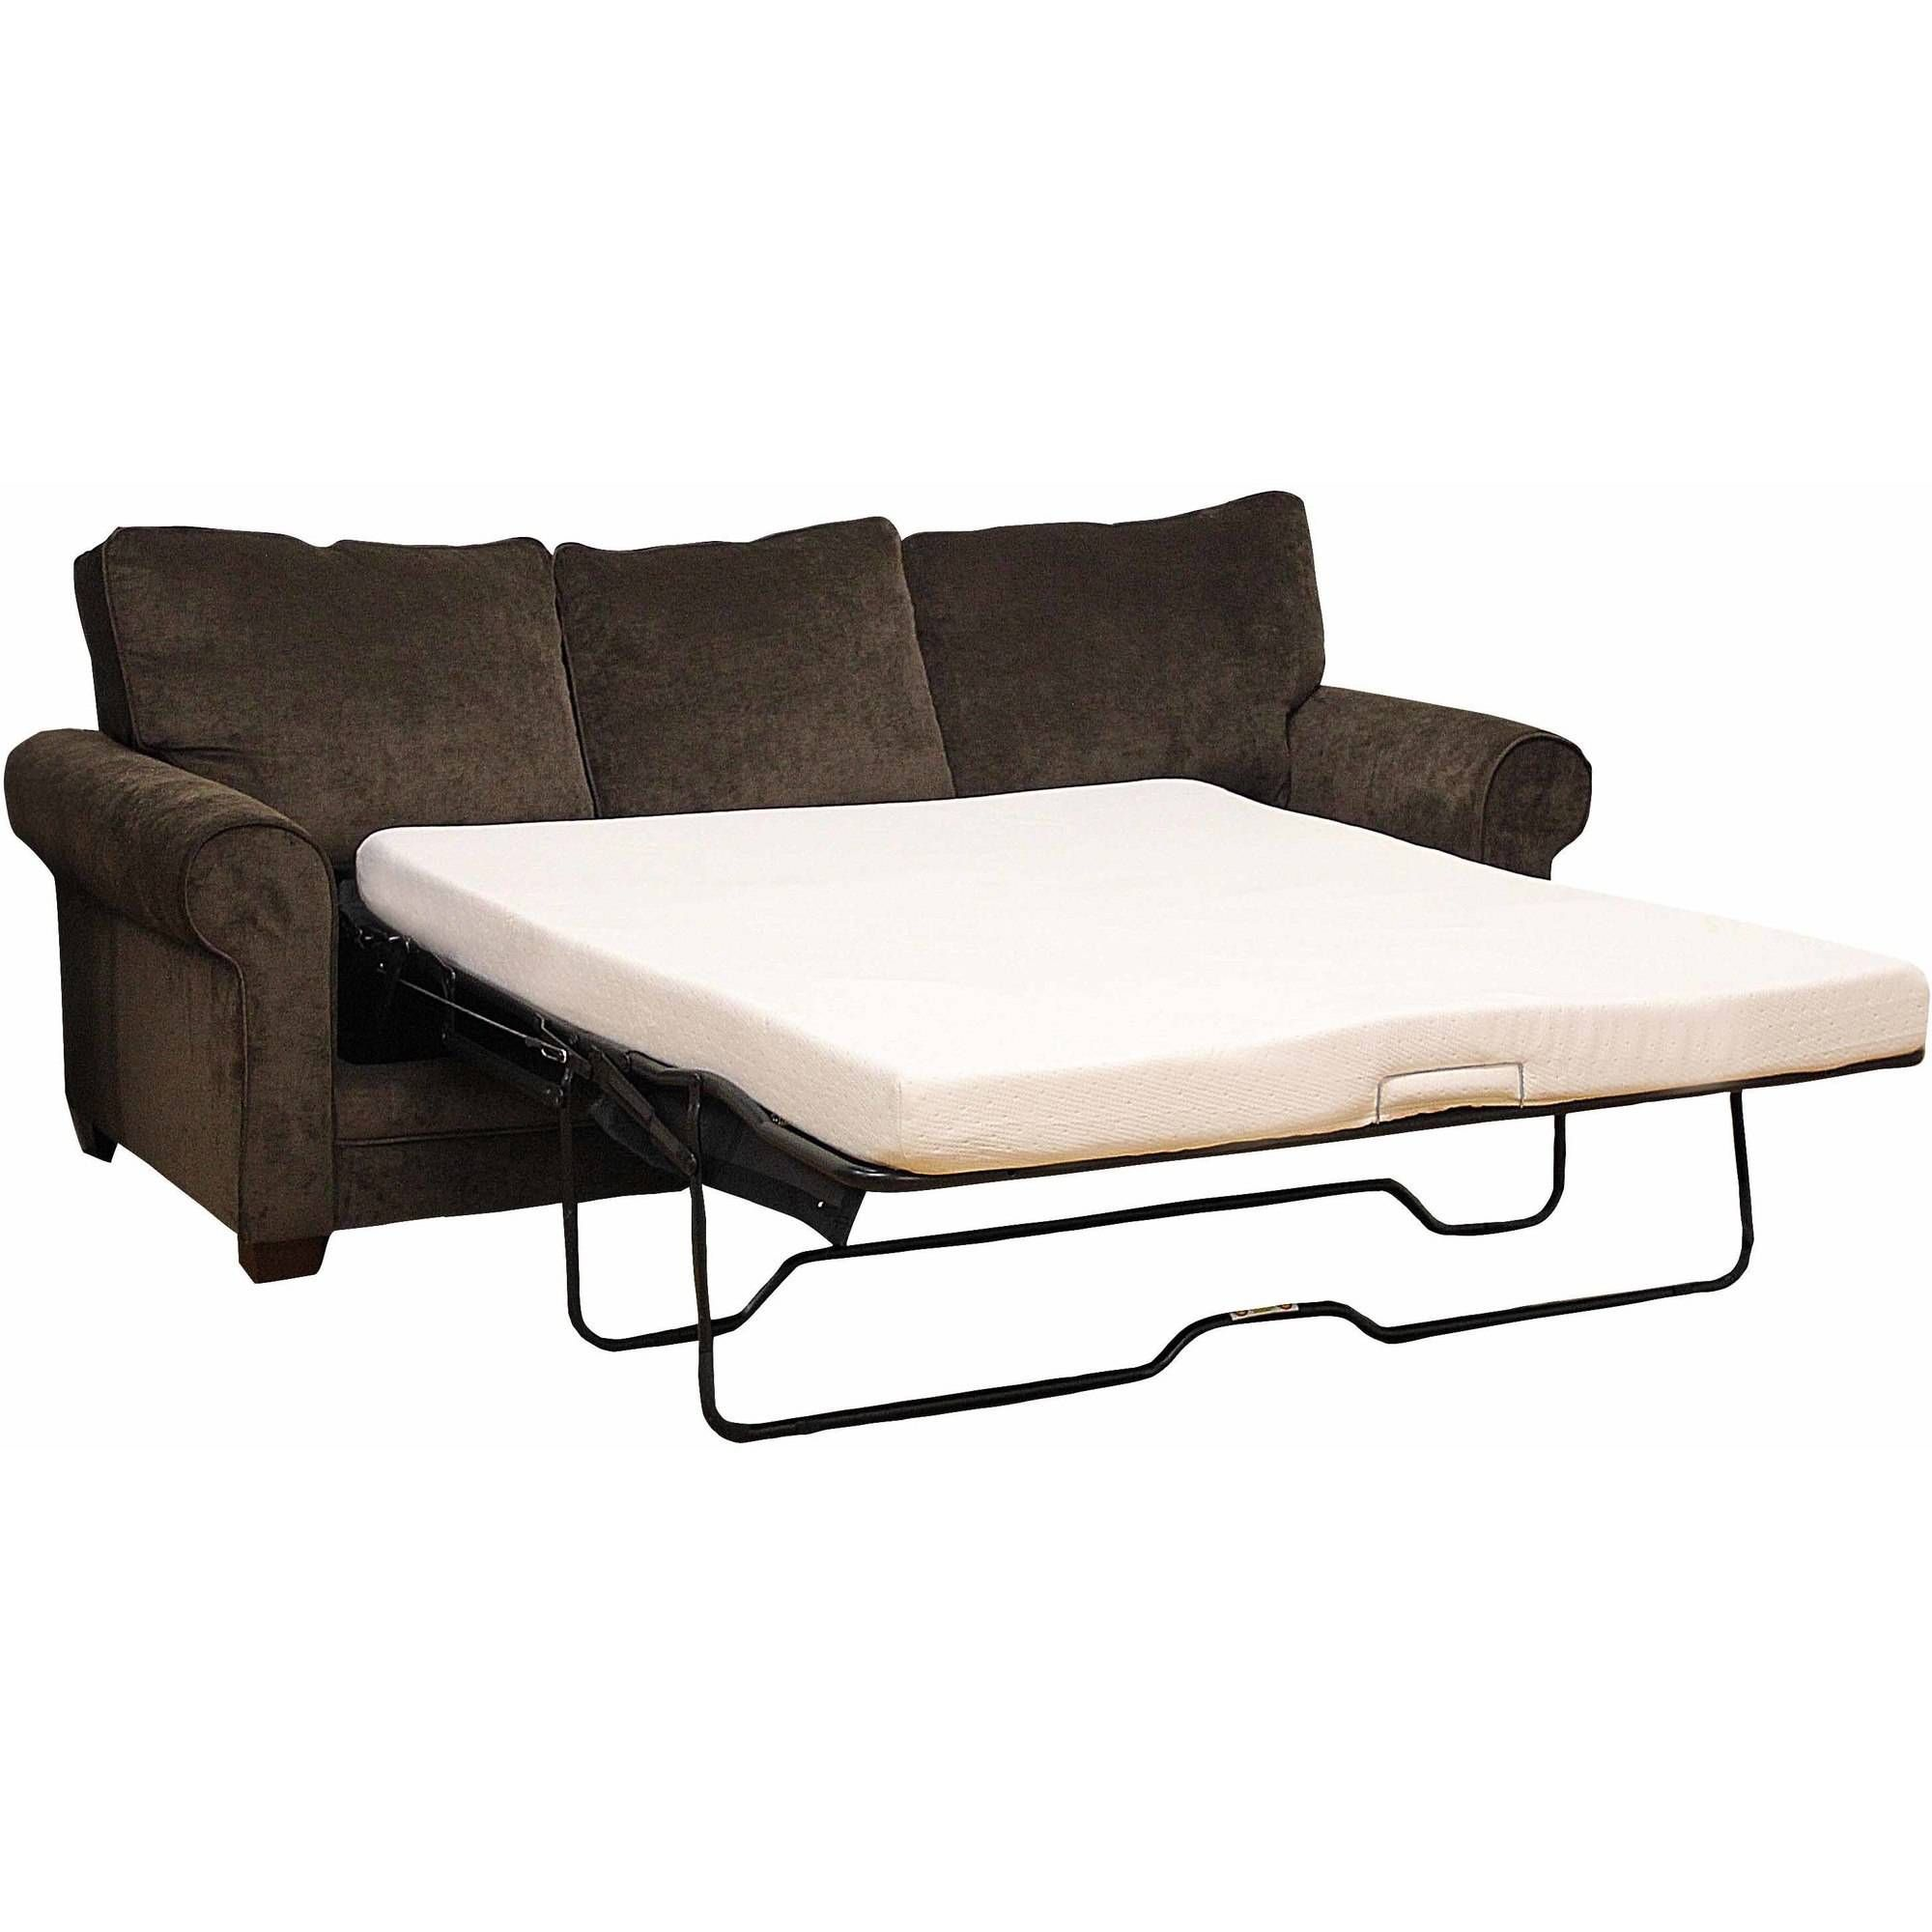 Schlafcouch Mit Sessel Schlafsofa Mit Sessel